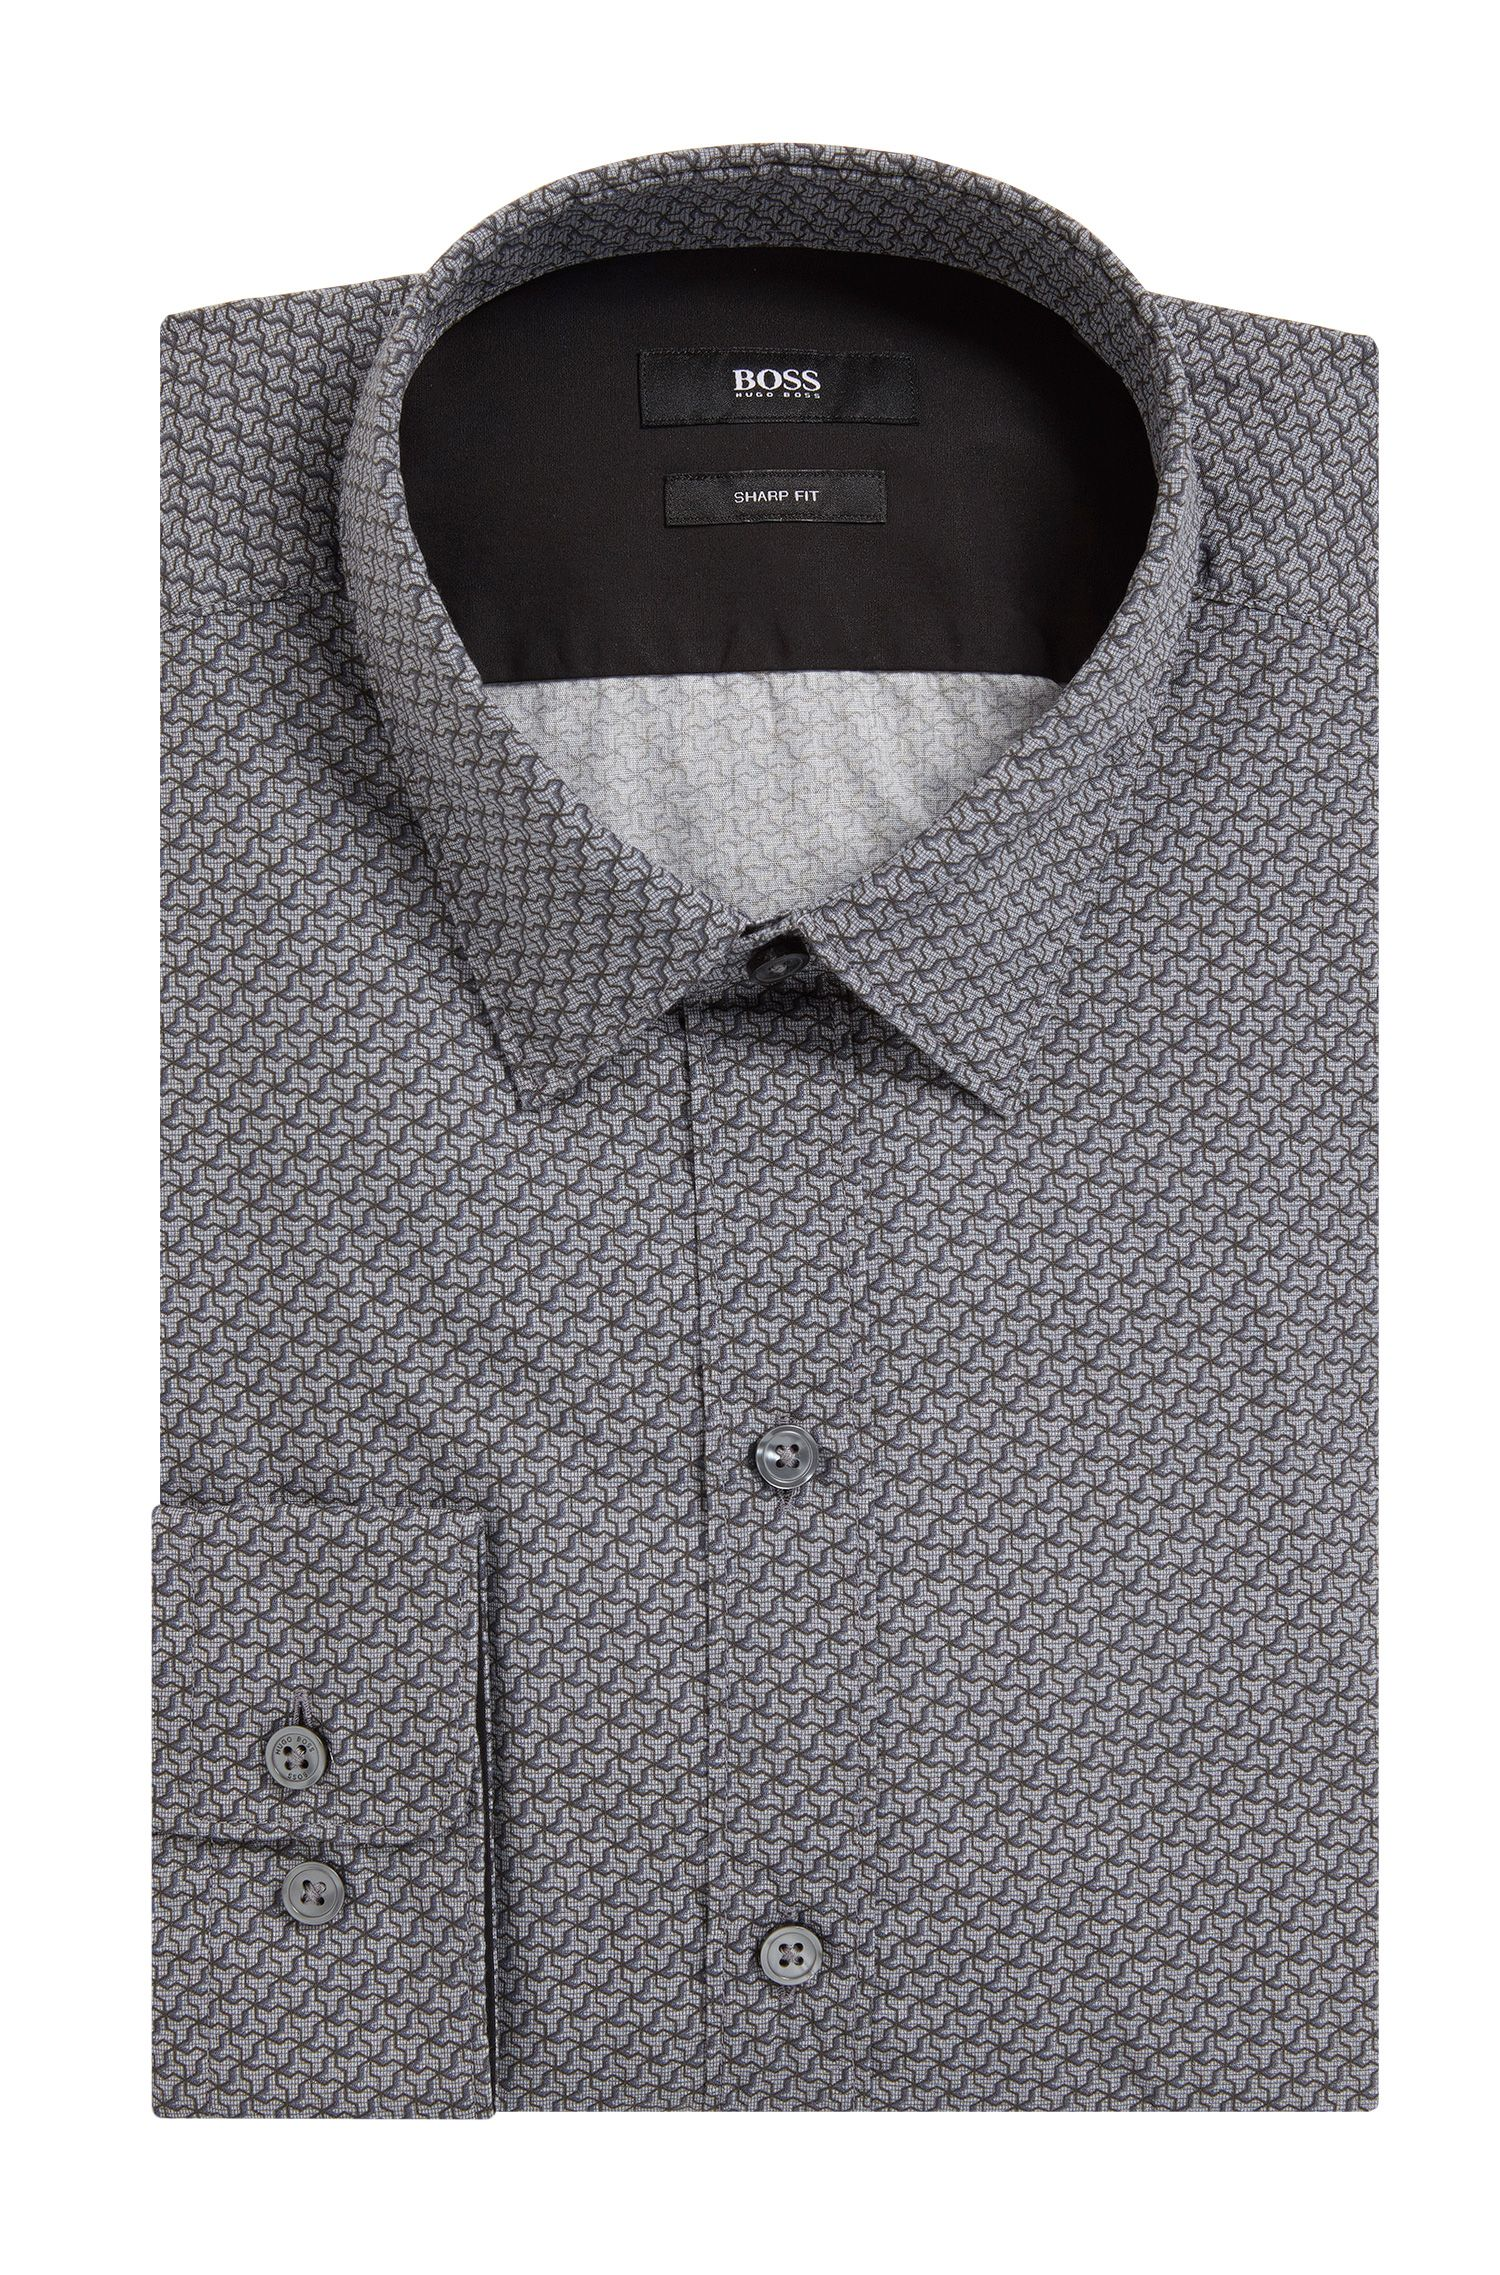 Cotton Poplin Button Down Shirt, Slim Fit | Robbie